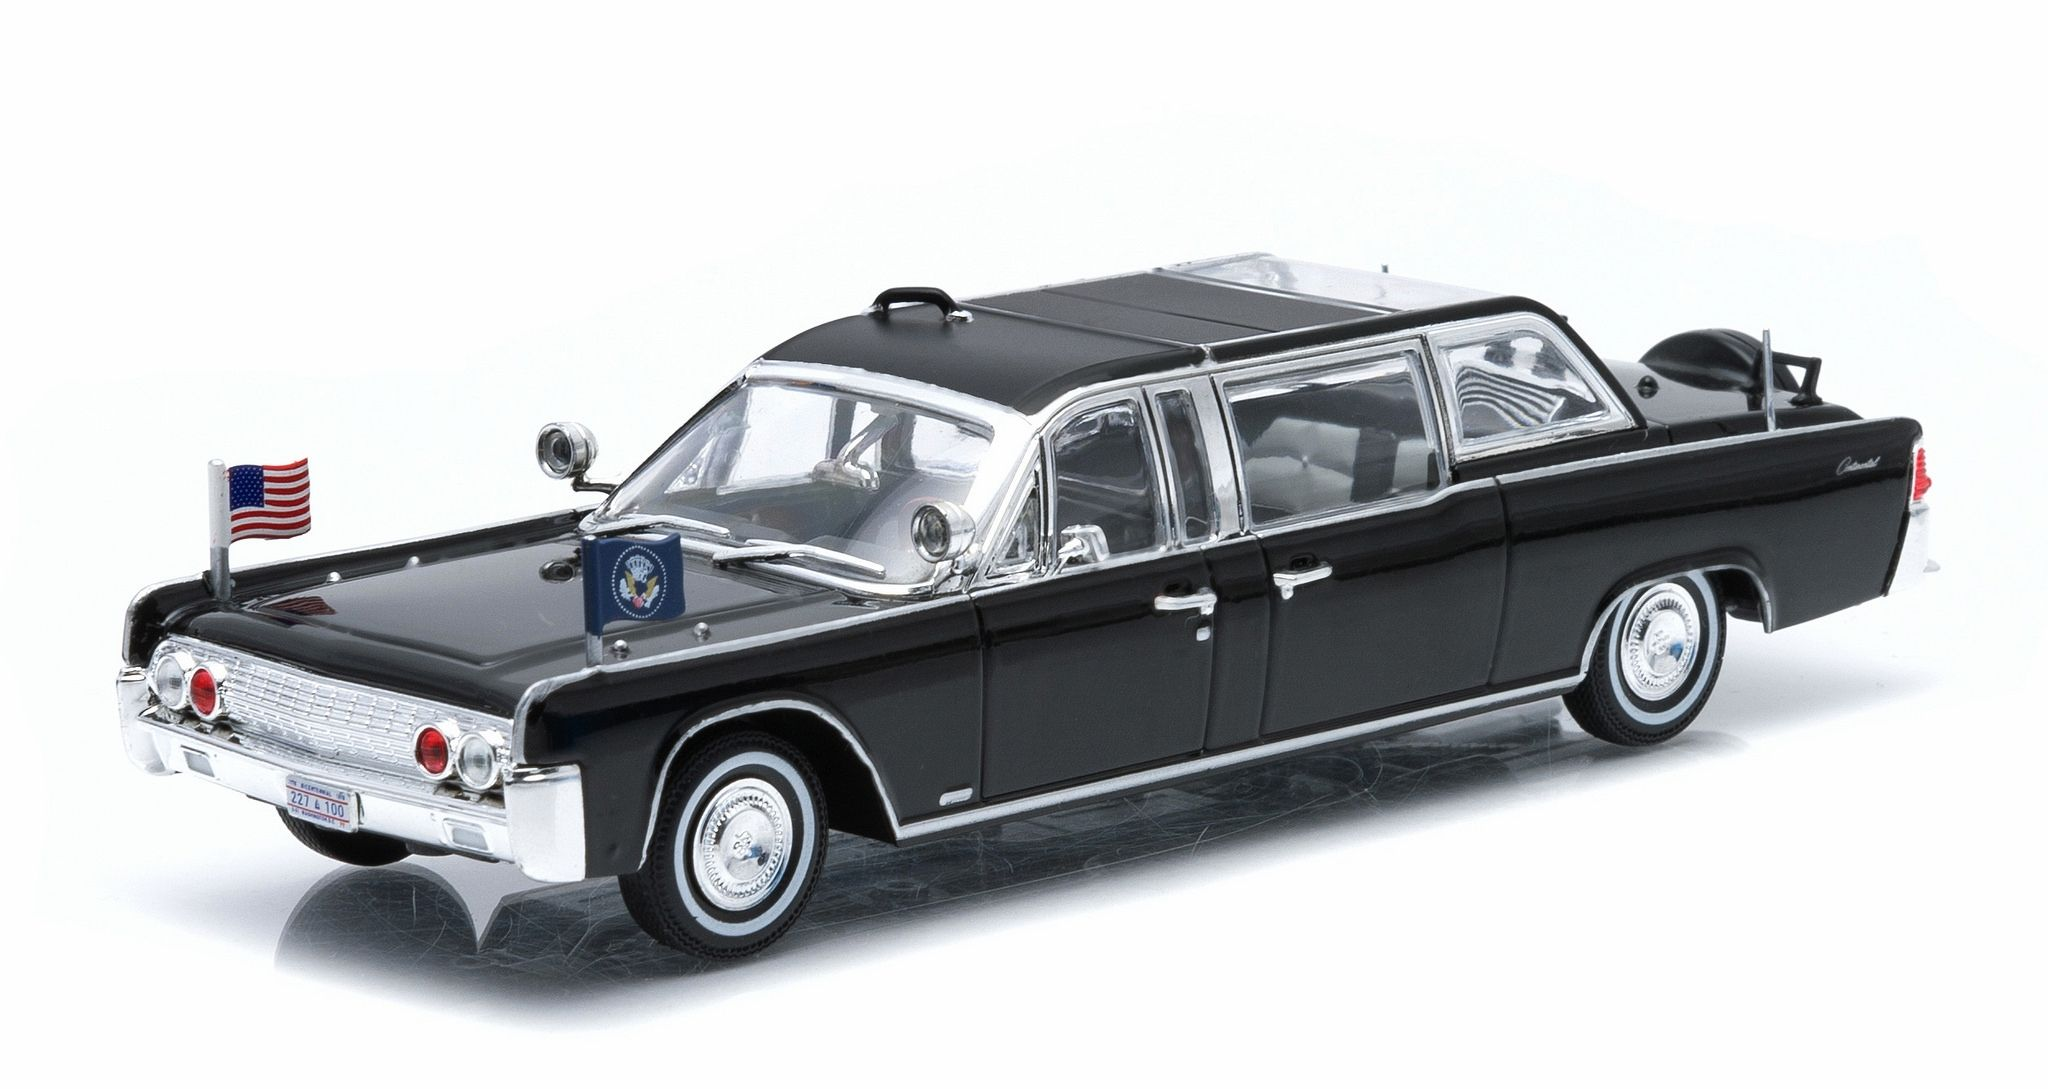 presidential limos series 1 1961 lincoln continental ss 100 x john f kennedy by greenlight. Black Bedroom Furniture Sets. Home Design Ideas